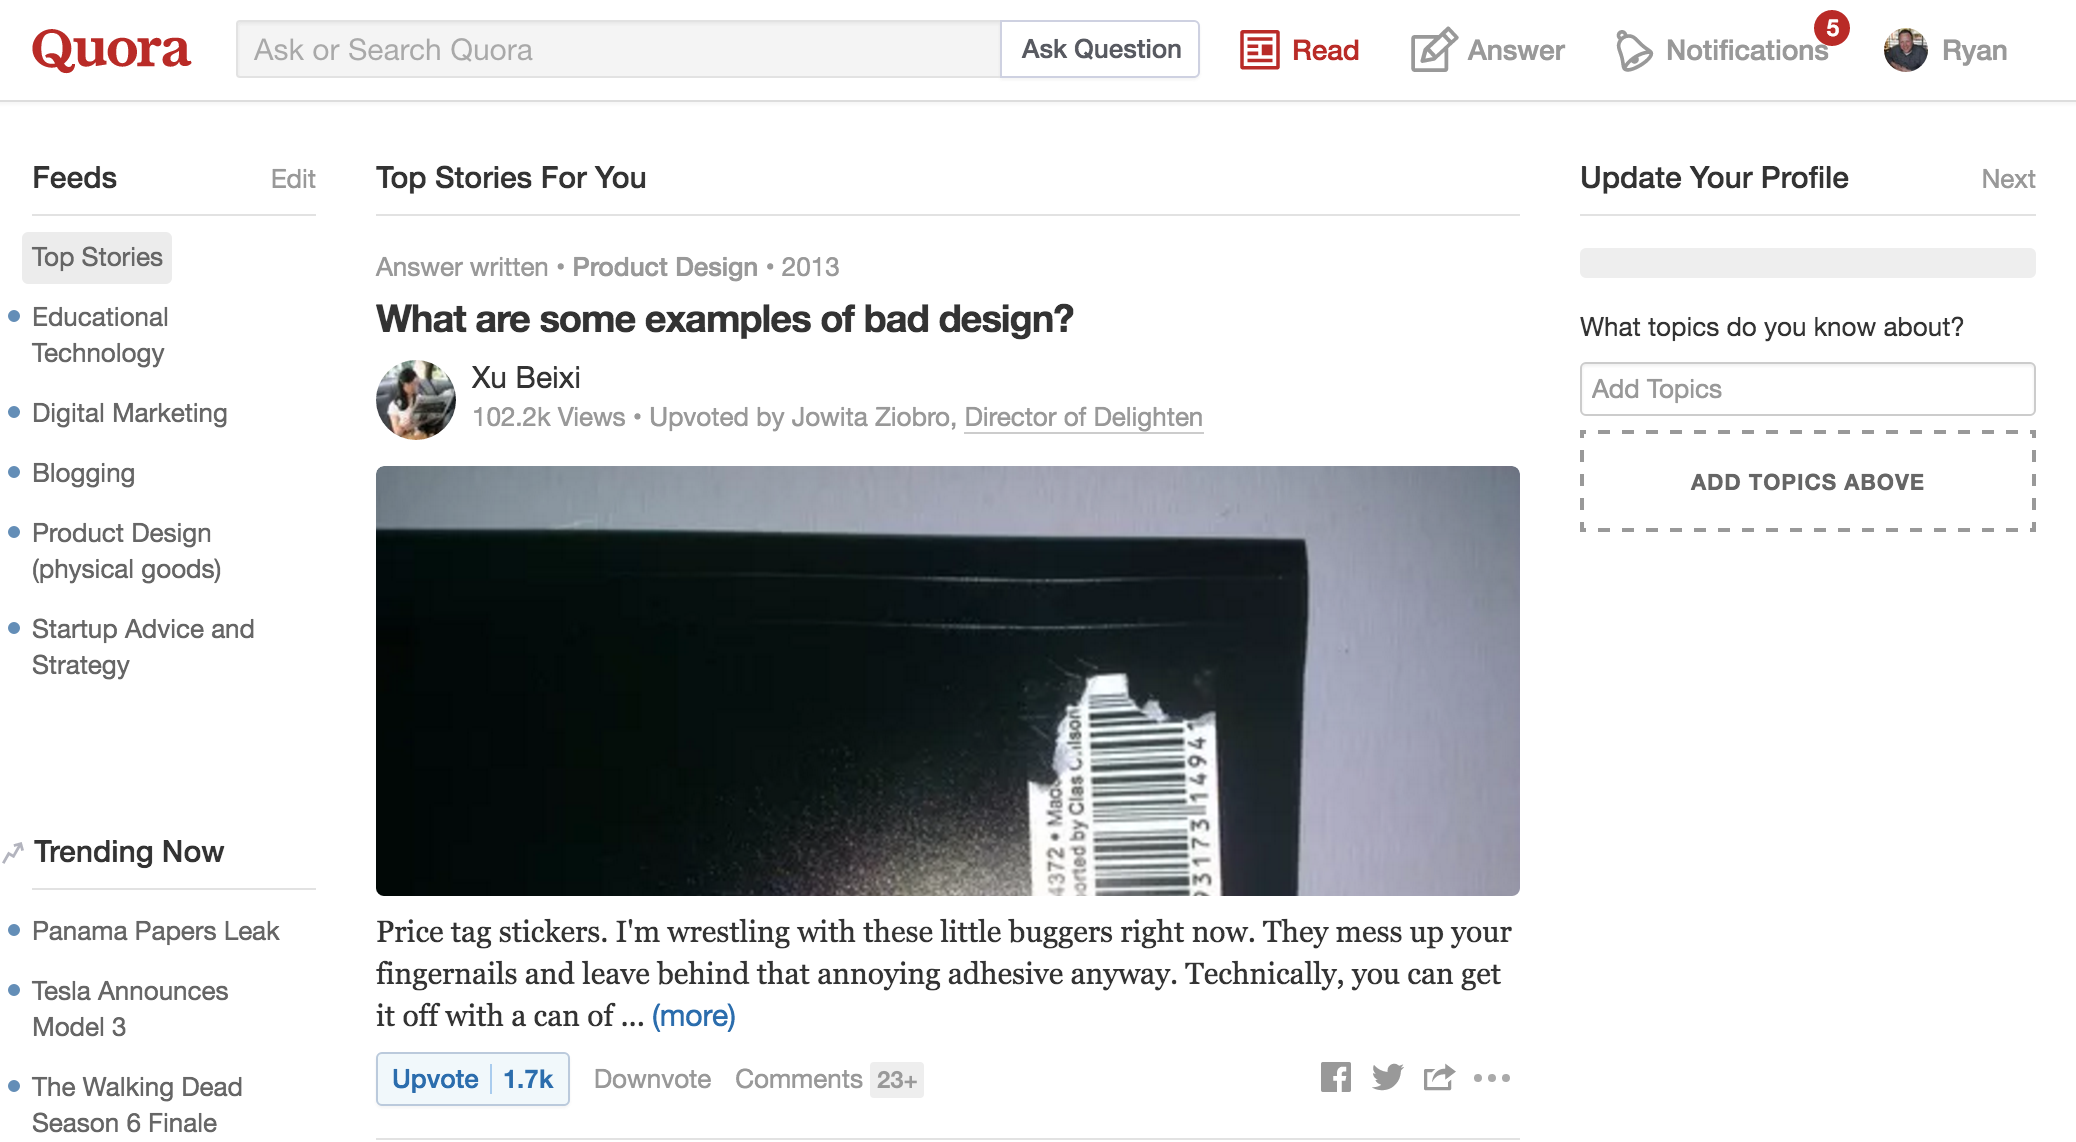 Using Quora to Promote Content